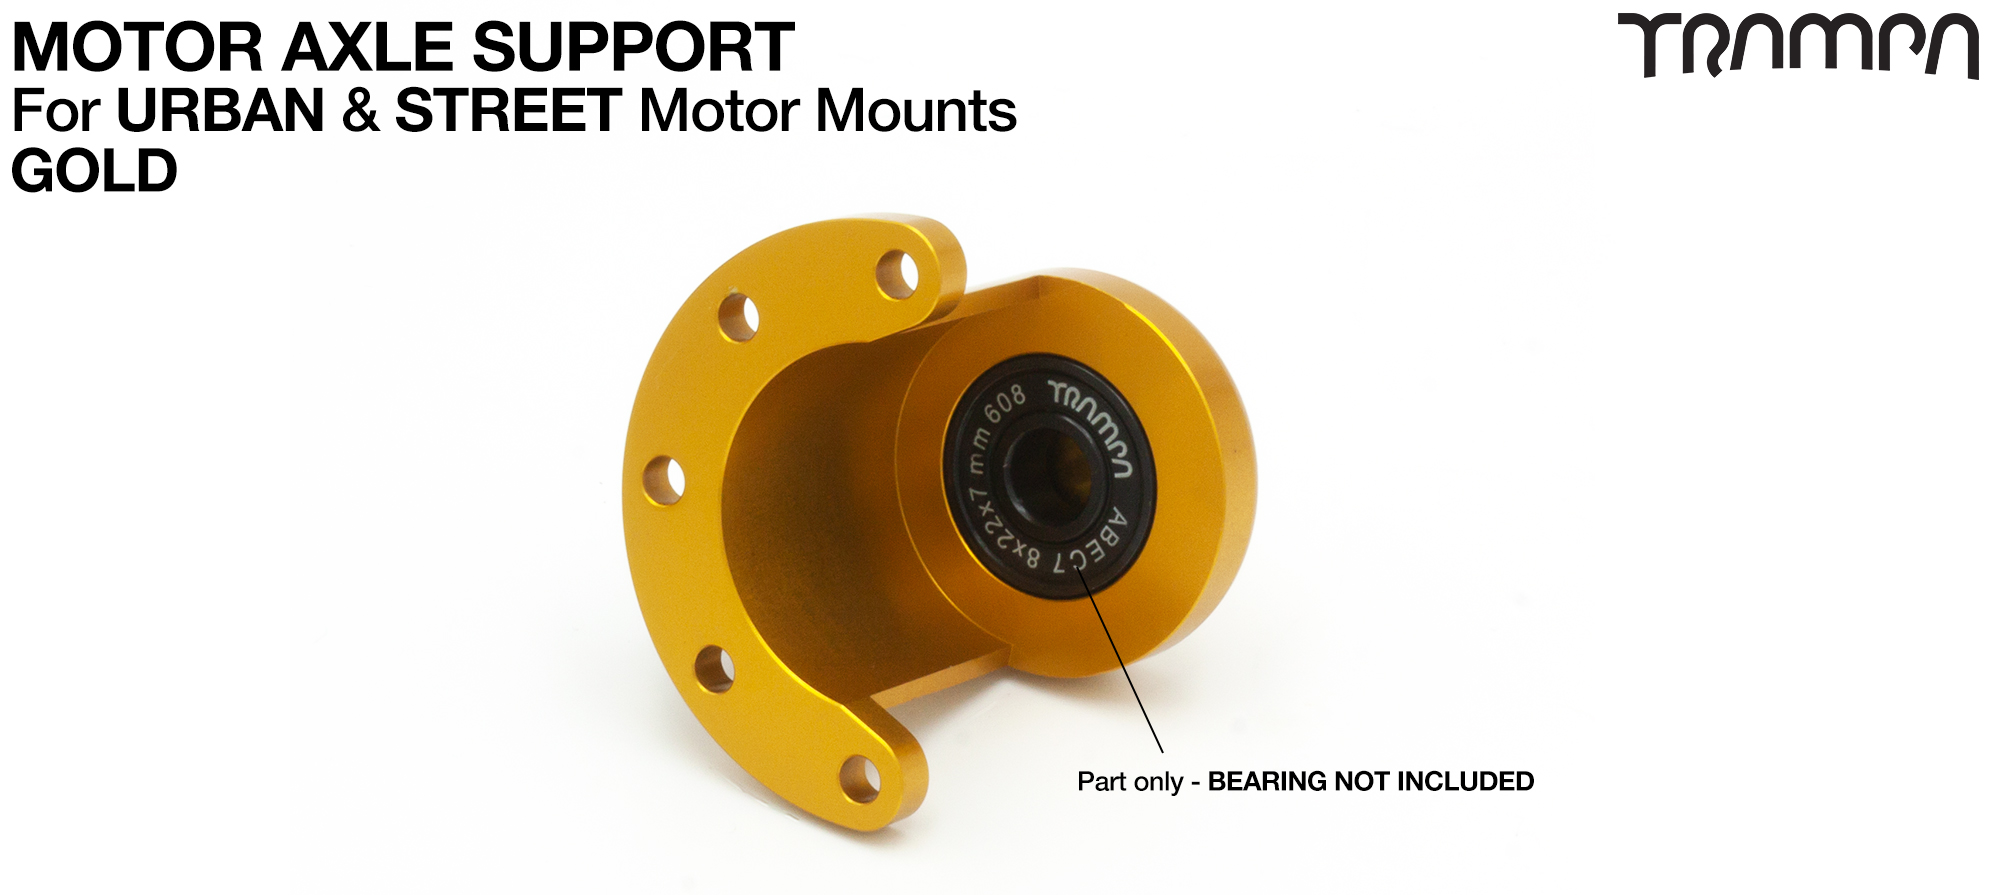 Universal Motor Axle Support - GOLD